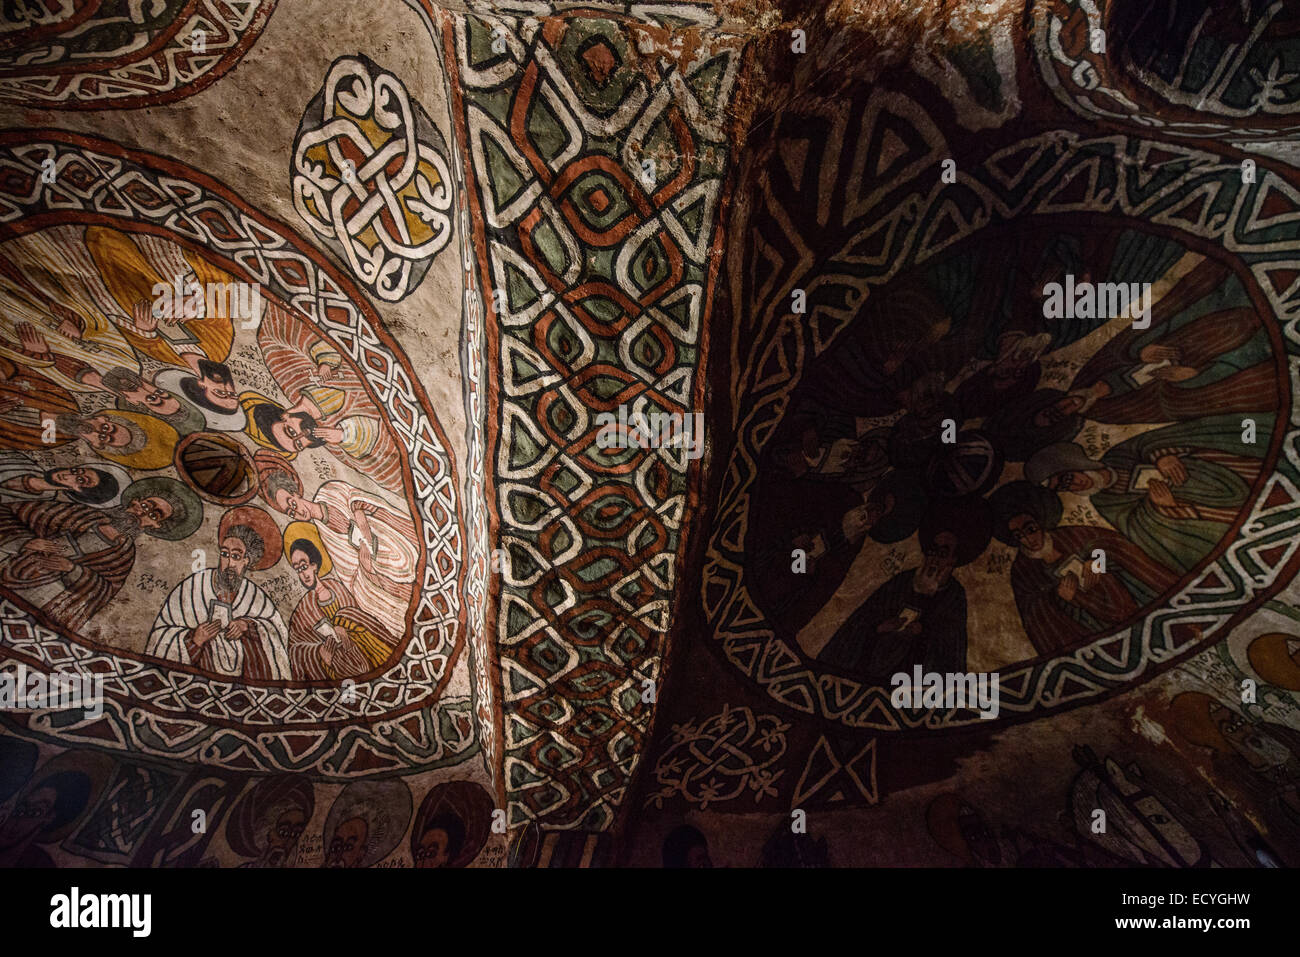 Frescoes of Abuna Yemata rock-hewn church,Tigray, Ethiopia - Stock Image